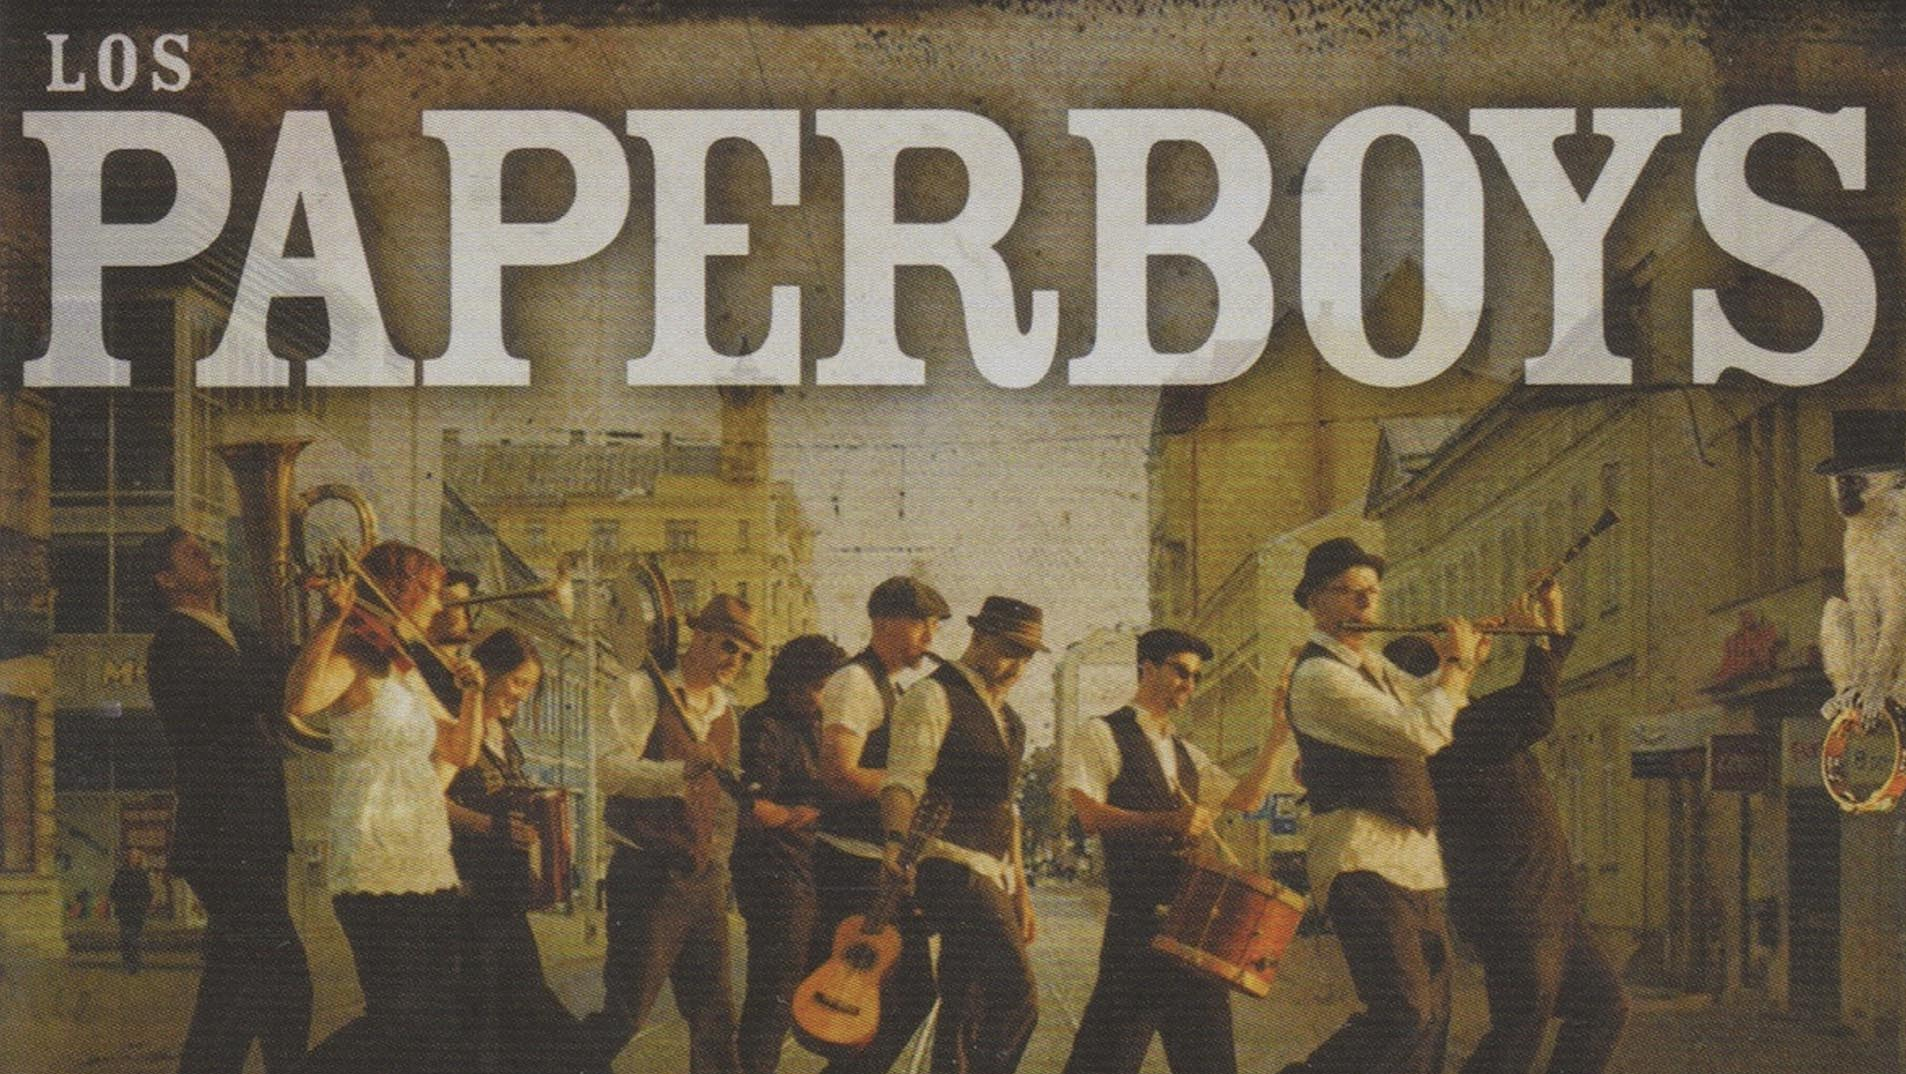 Paperboys - Events an der Alten Spinnerei